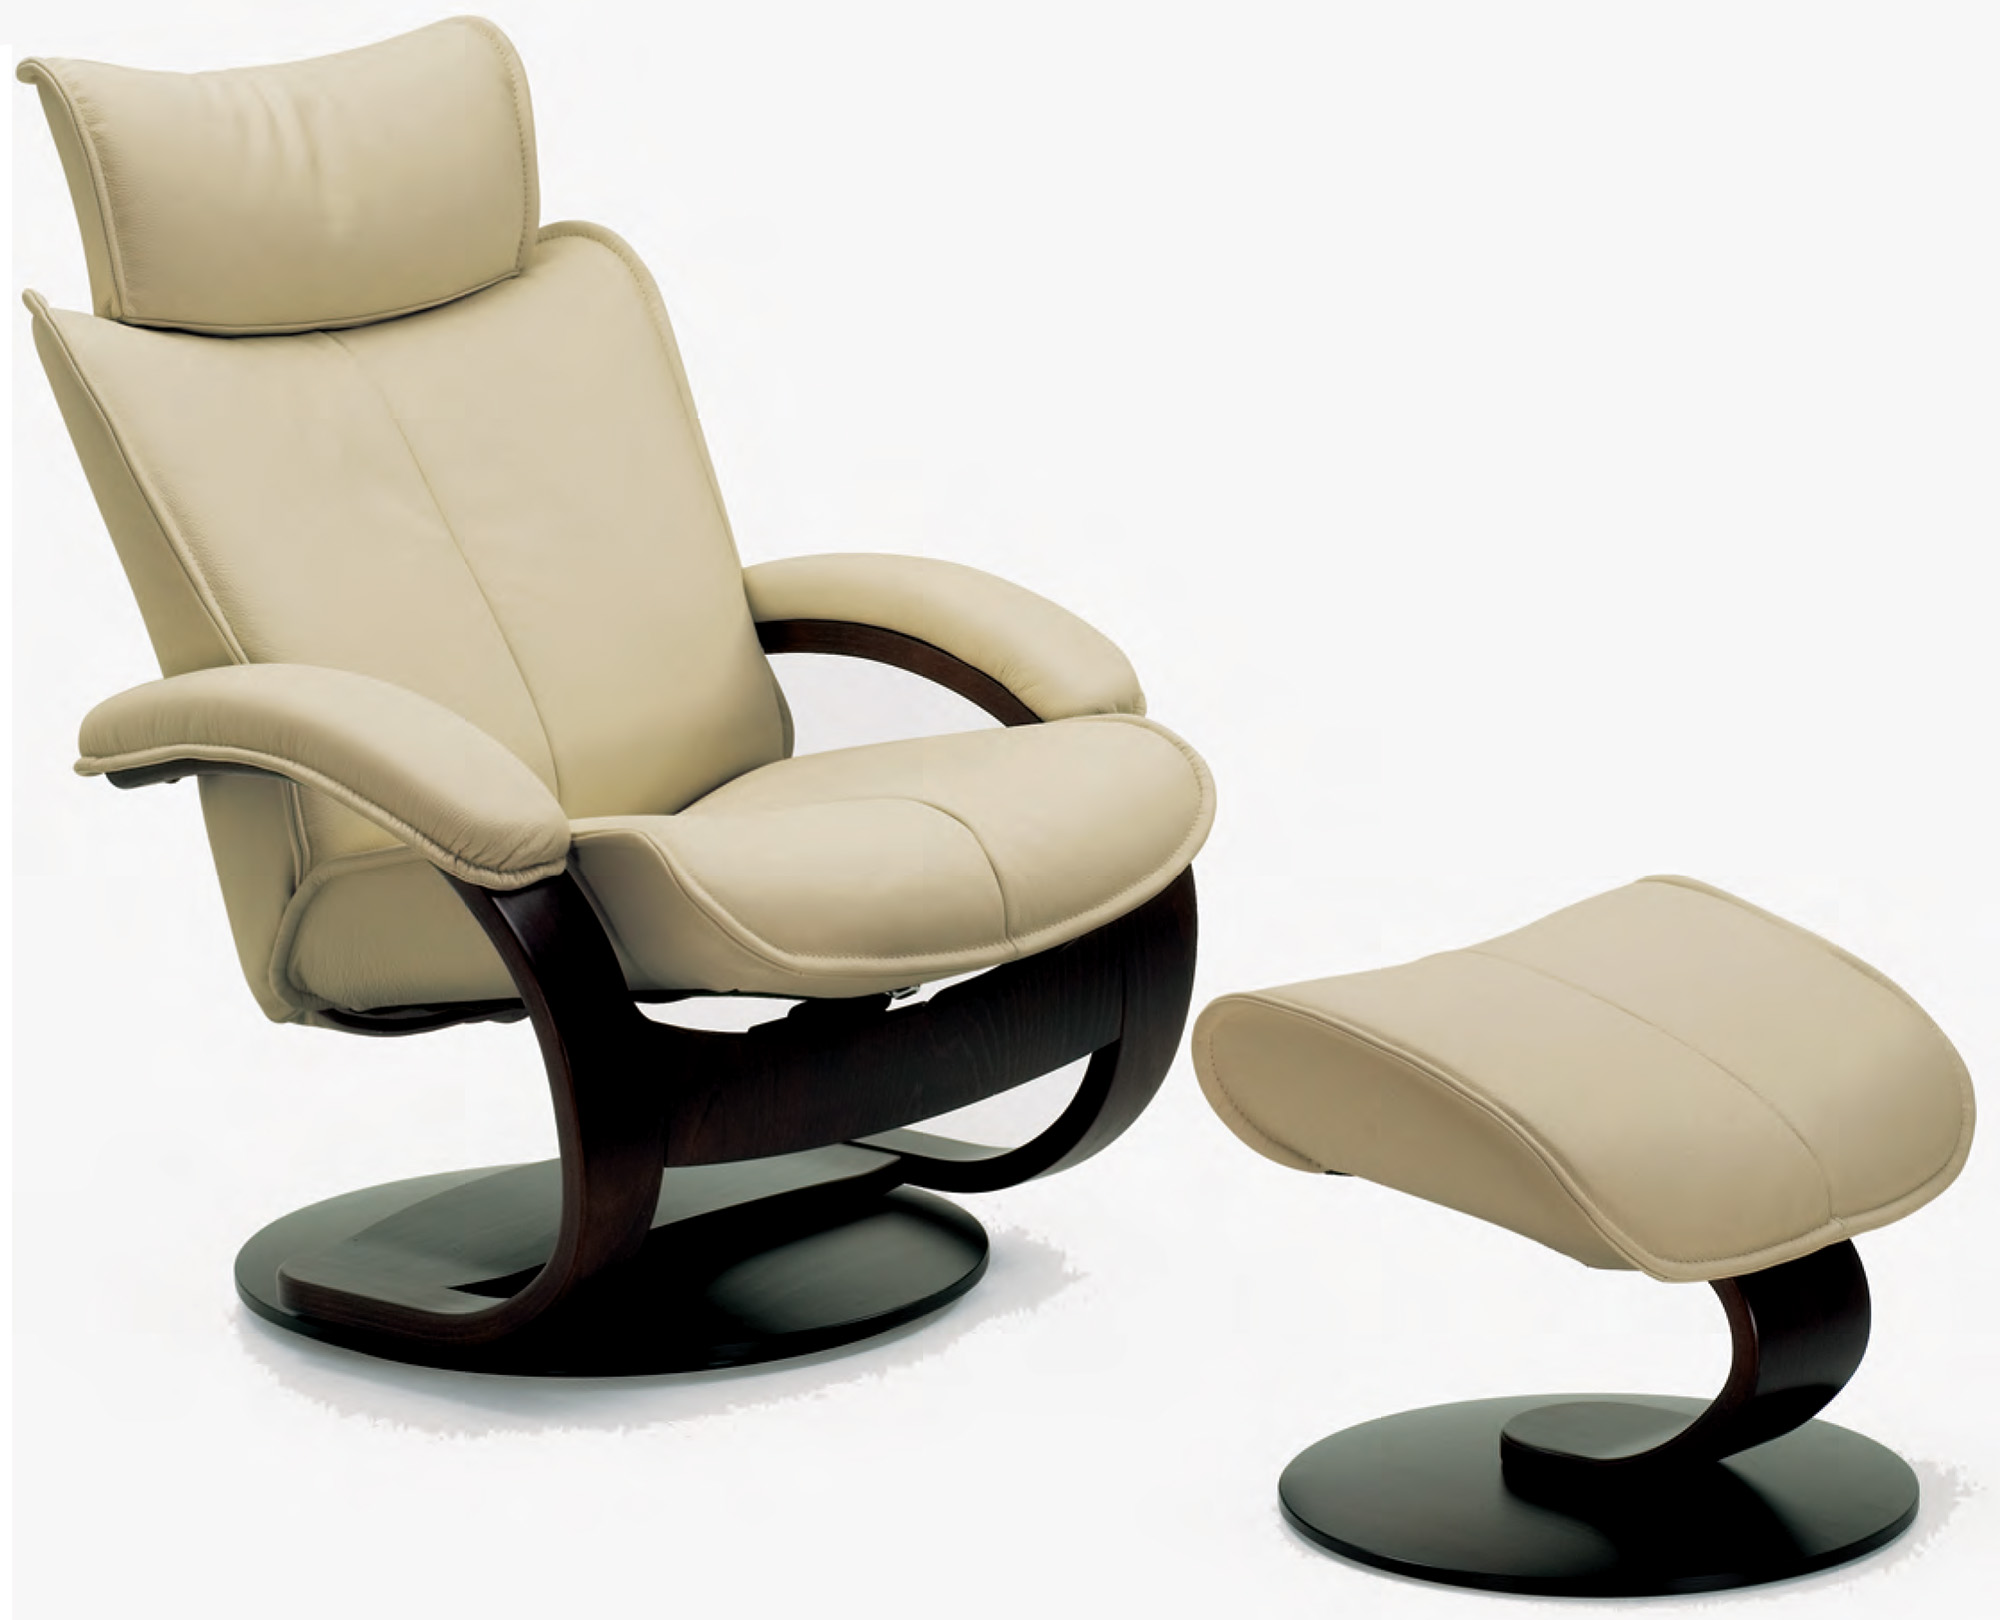 reclining chair with ottoman leather wheel in mumbai fjords ona ergonomic recliner and scandinavian lounger